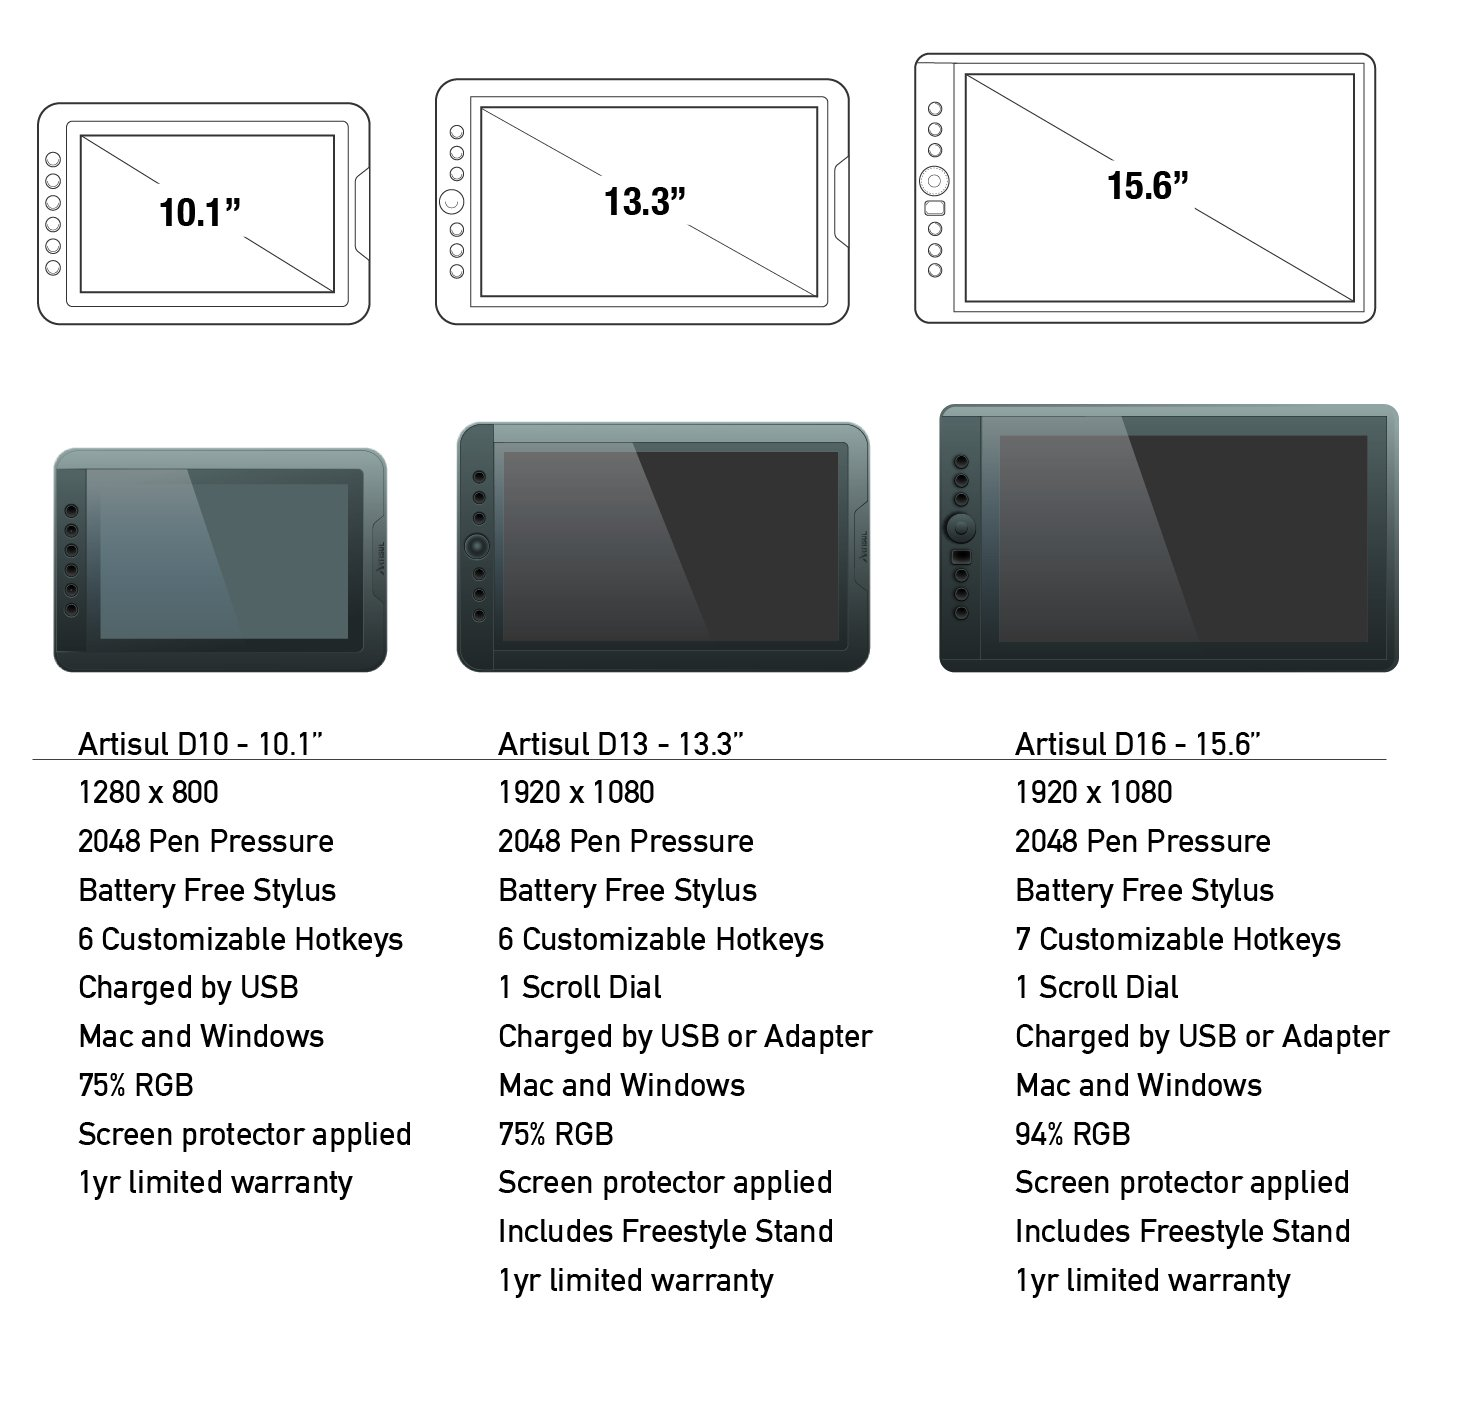 Artisul D16 - 15.6'' LCD Graphics Tablet with Display + Freestyle Stand Bundle … (D16 - 15.6'') by Artisul (Image #7)